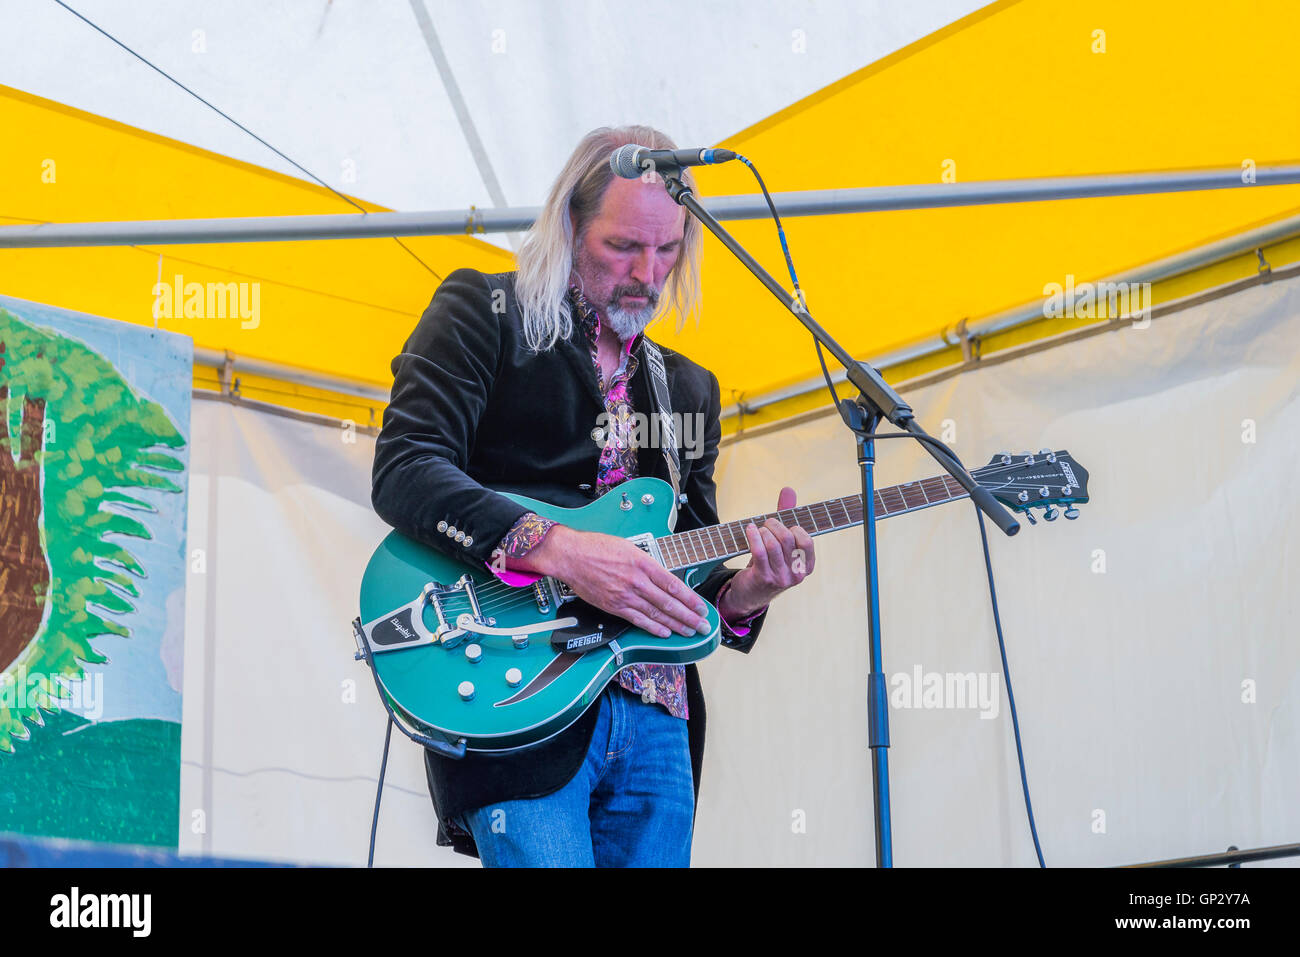 British guitarist Adrian Nation performs at Canmore Folk Music Festival, Canmore, Alberta, Canada - Stock Image